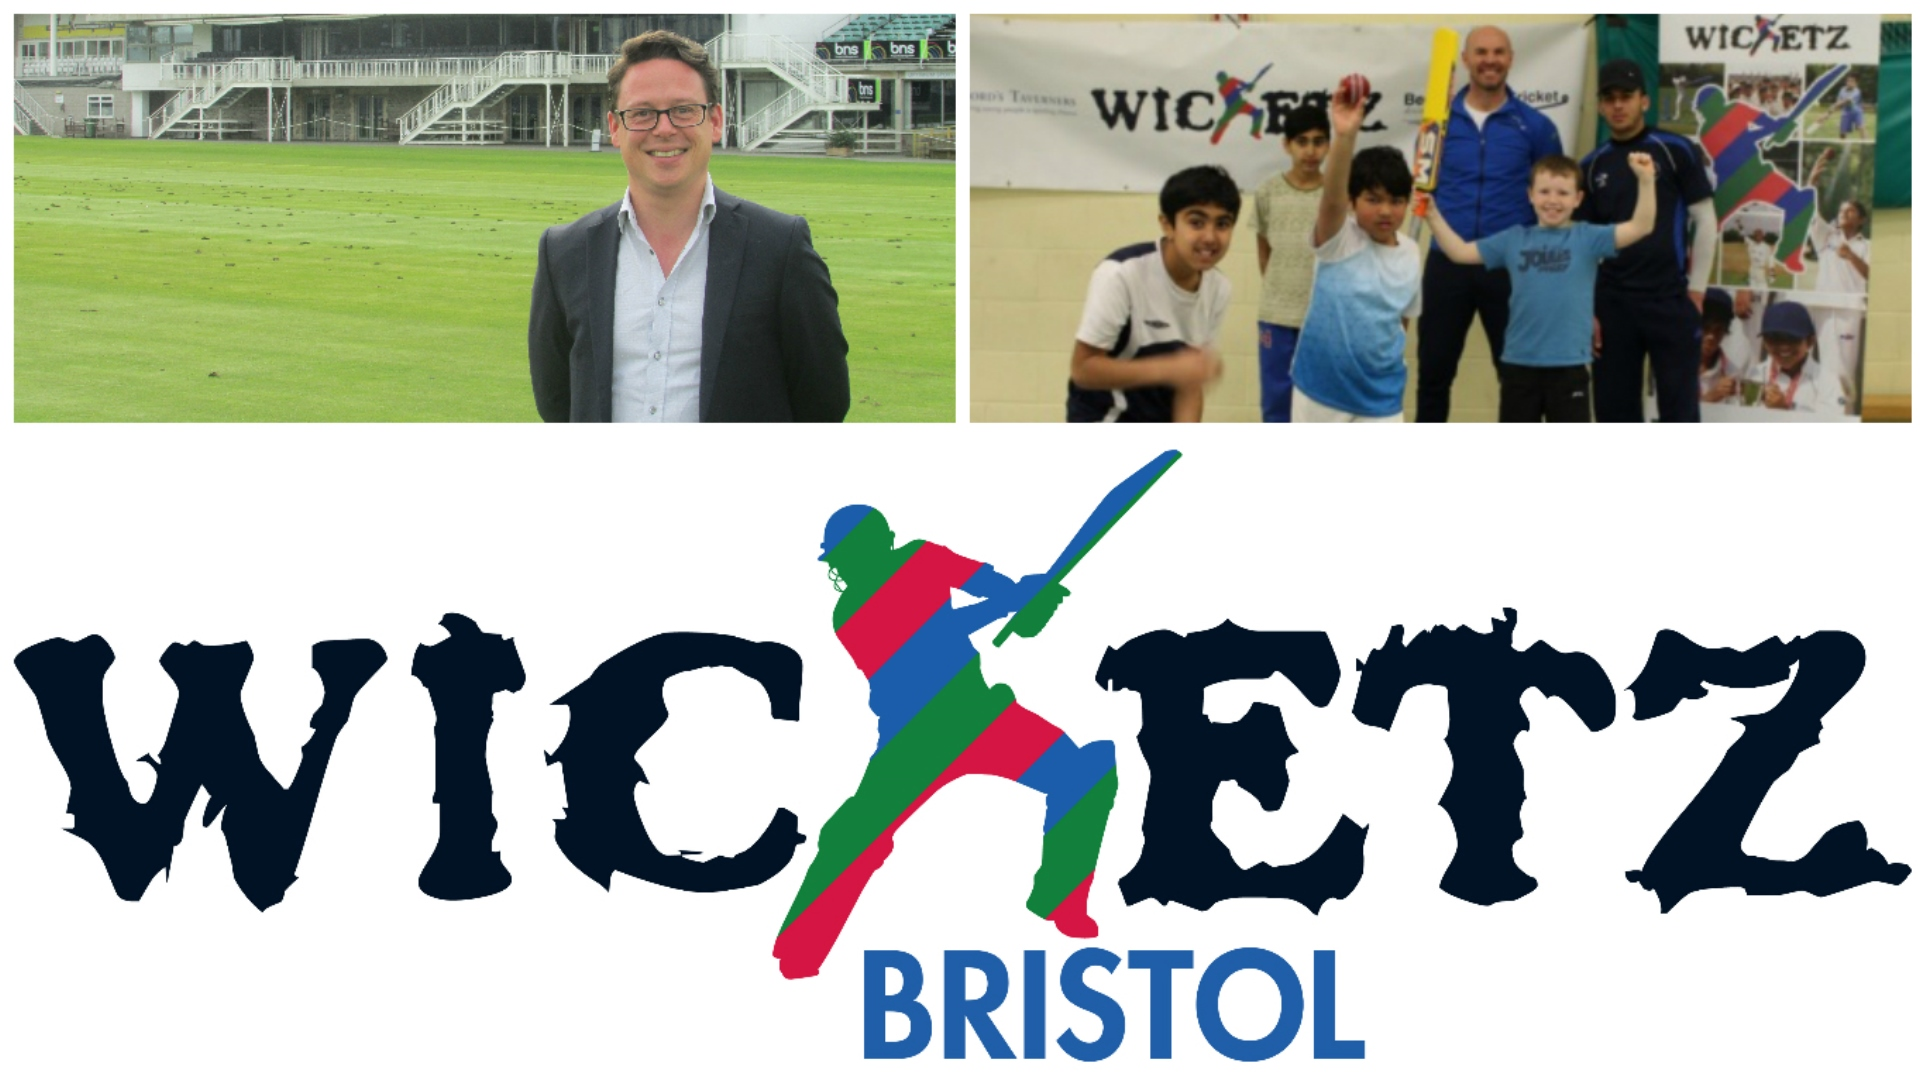 Bristol Wicketz project provides free kids cricket sessions